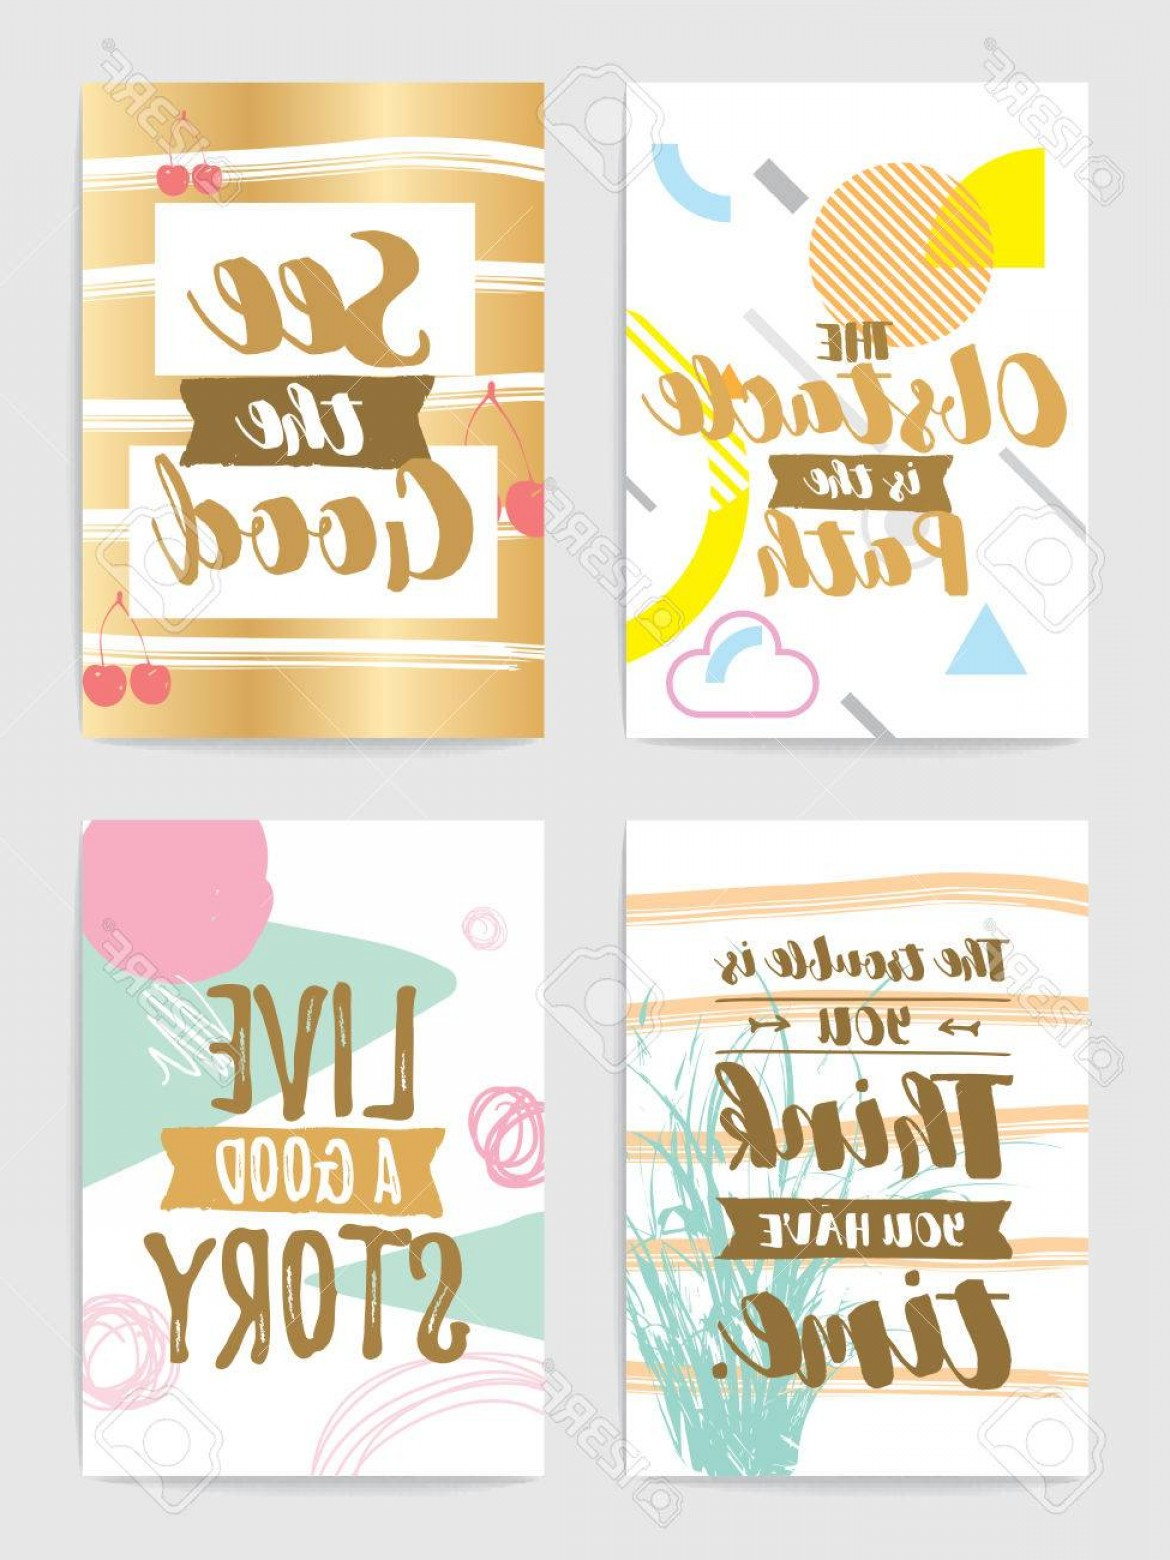 Inspirational Backgrounds Vector: Photostock Vector Creative Cards With Inspirational Quotes On Abstract Geometric Backgrounds Trendy Hipster Style Moti